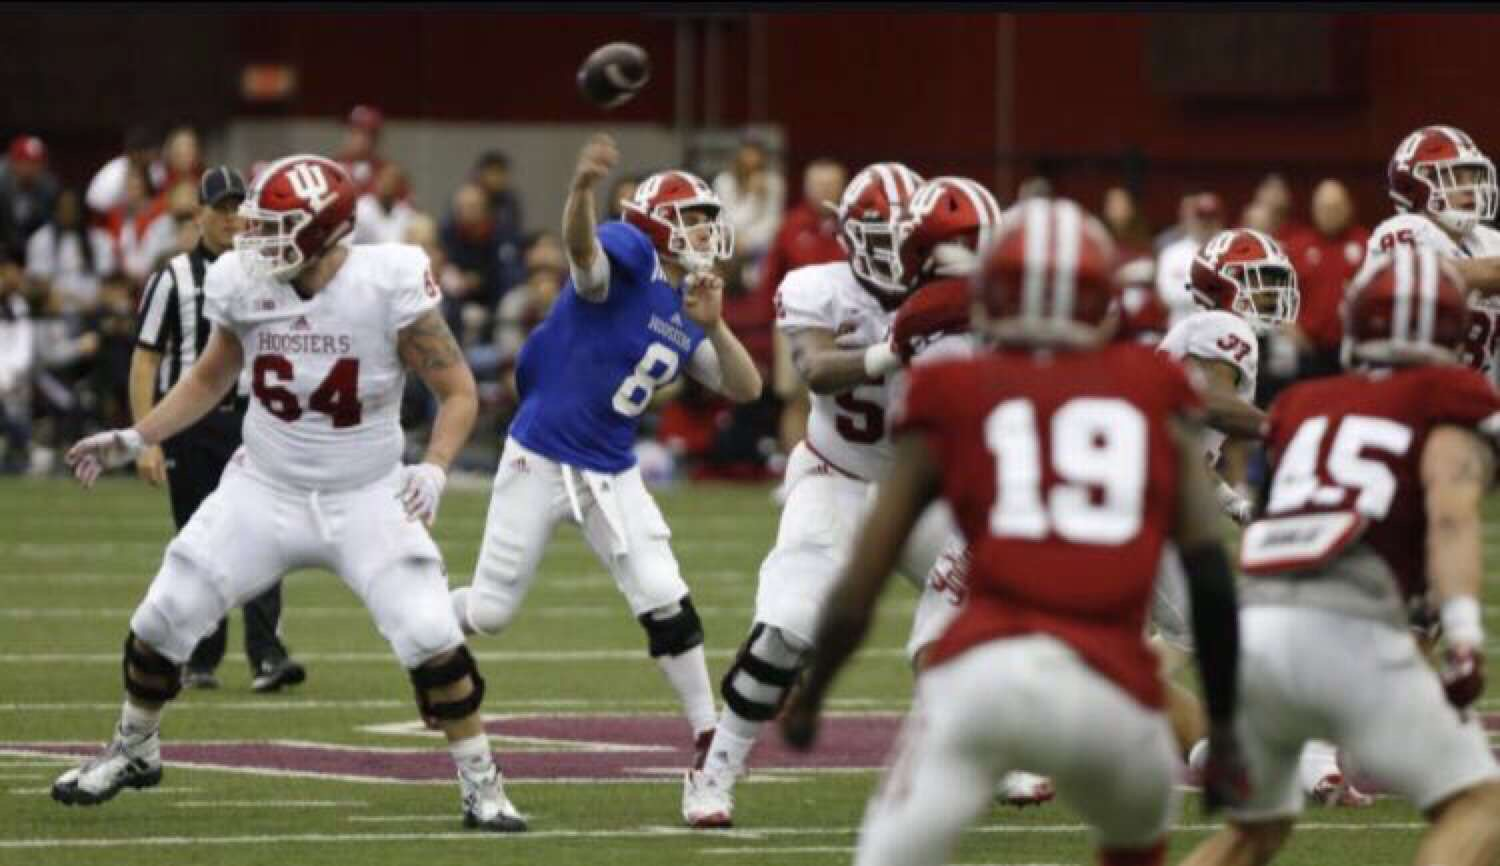 Niles West alum Johnny Pabst throwing a touchdown for the Indiana Hoosiers.